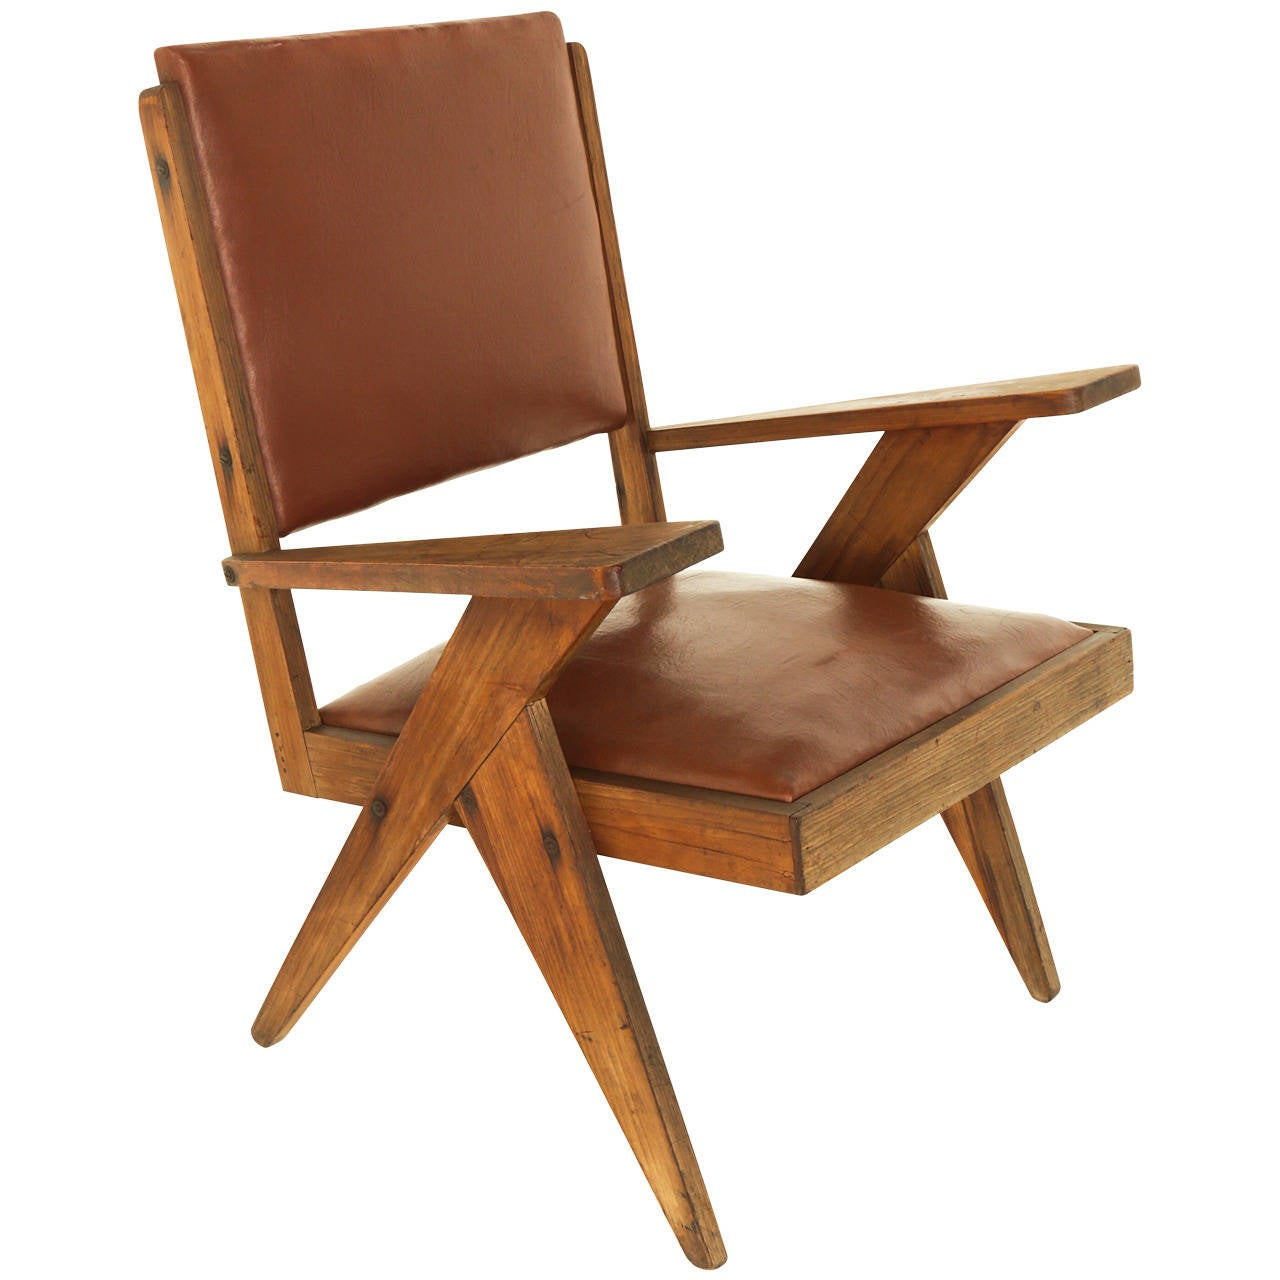 Z Chair For Sale Jose Zanine Caldas Quotz Quot Line Chair For Sale At 1stdibs